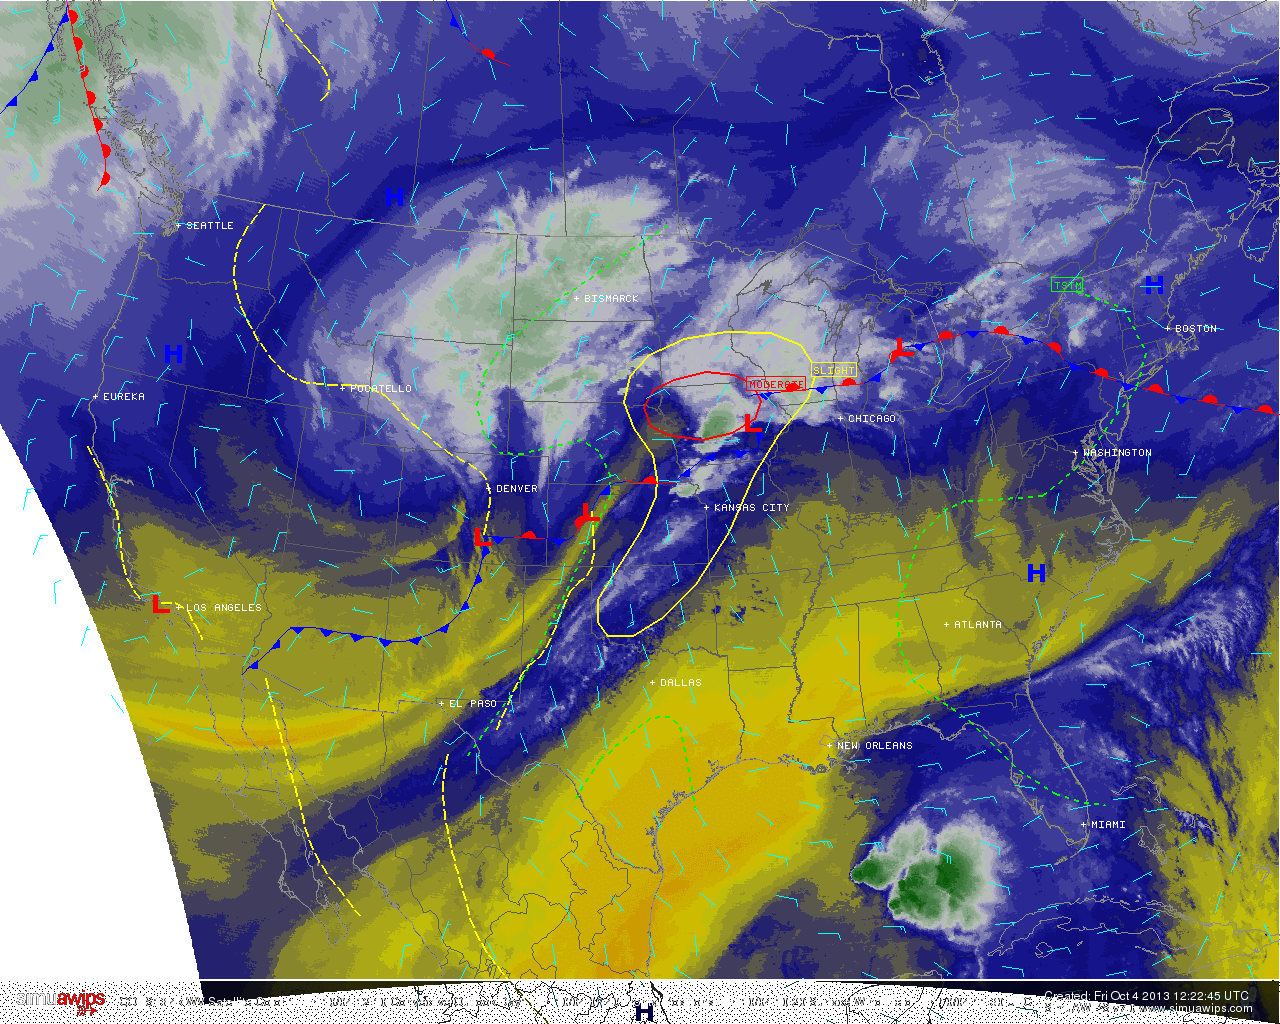 US Water Vapor satellite imagery, frontal positions, and SPC severe weather outlook from the morning of October 4 2013. A disorganized T.S Karen is seen in the Gulf of Mexico.